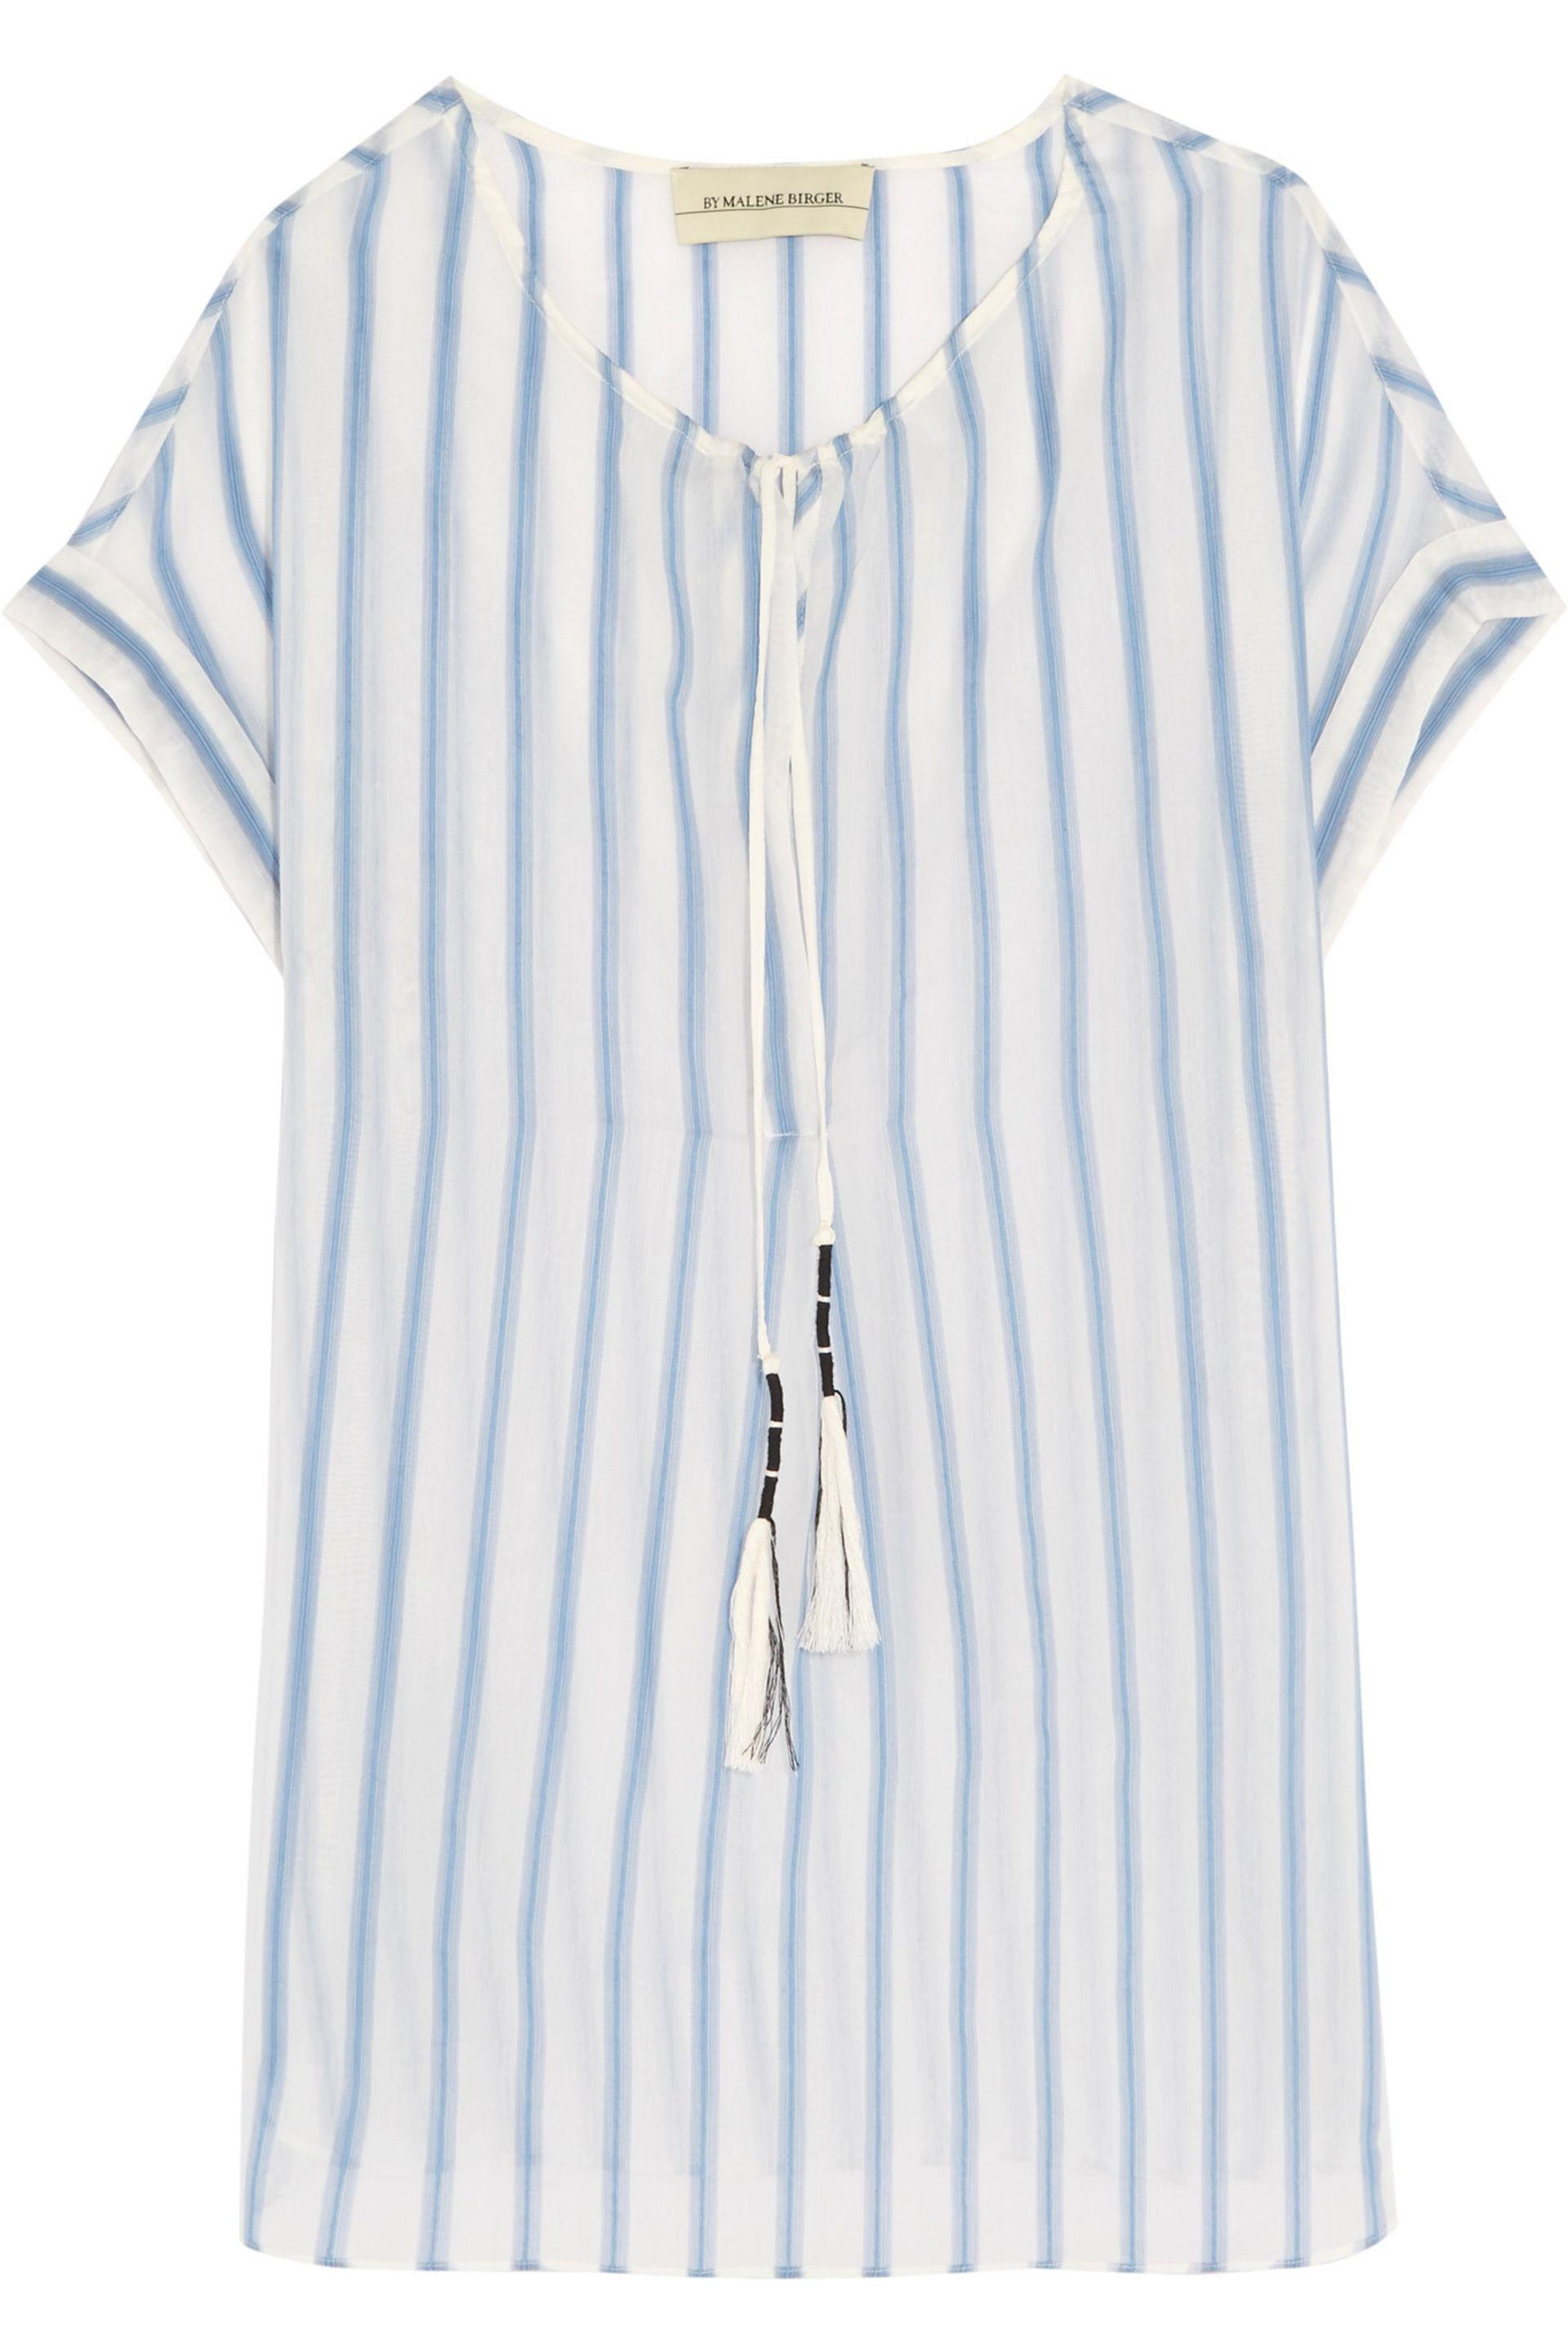 Free Shipping Outlet Locations By Malene Birger Woman Caroly Striped Cotton And Silk-blend Voile Top Sky Blue Size 34 By Malene Birger Clearance Outlet Store Visit New Cheap Online dNEw8Fh4MH